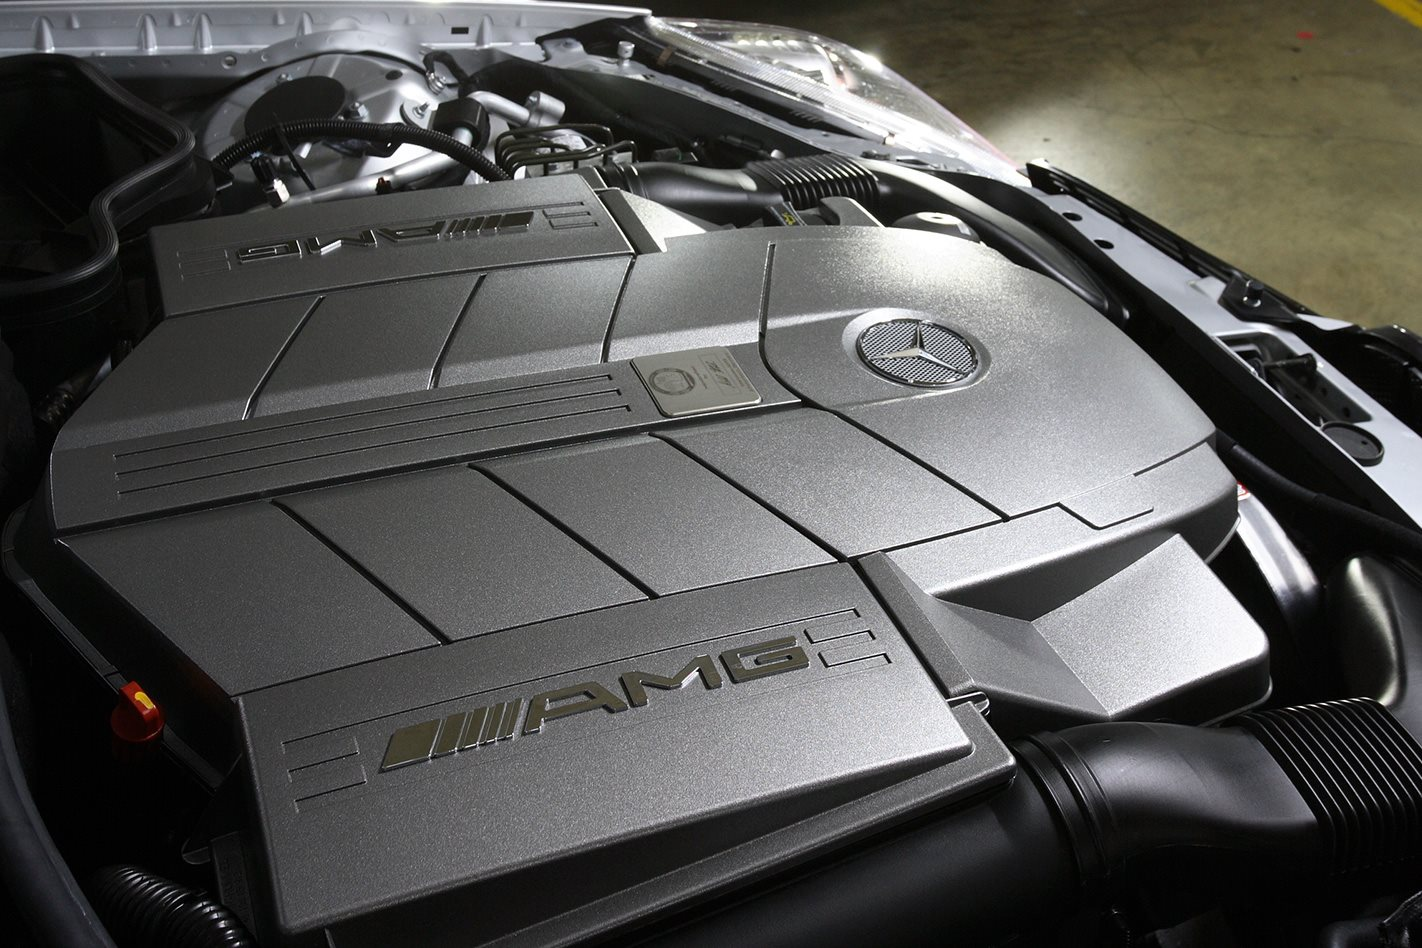 2006 Mercedes AMG SLK55 engine